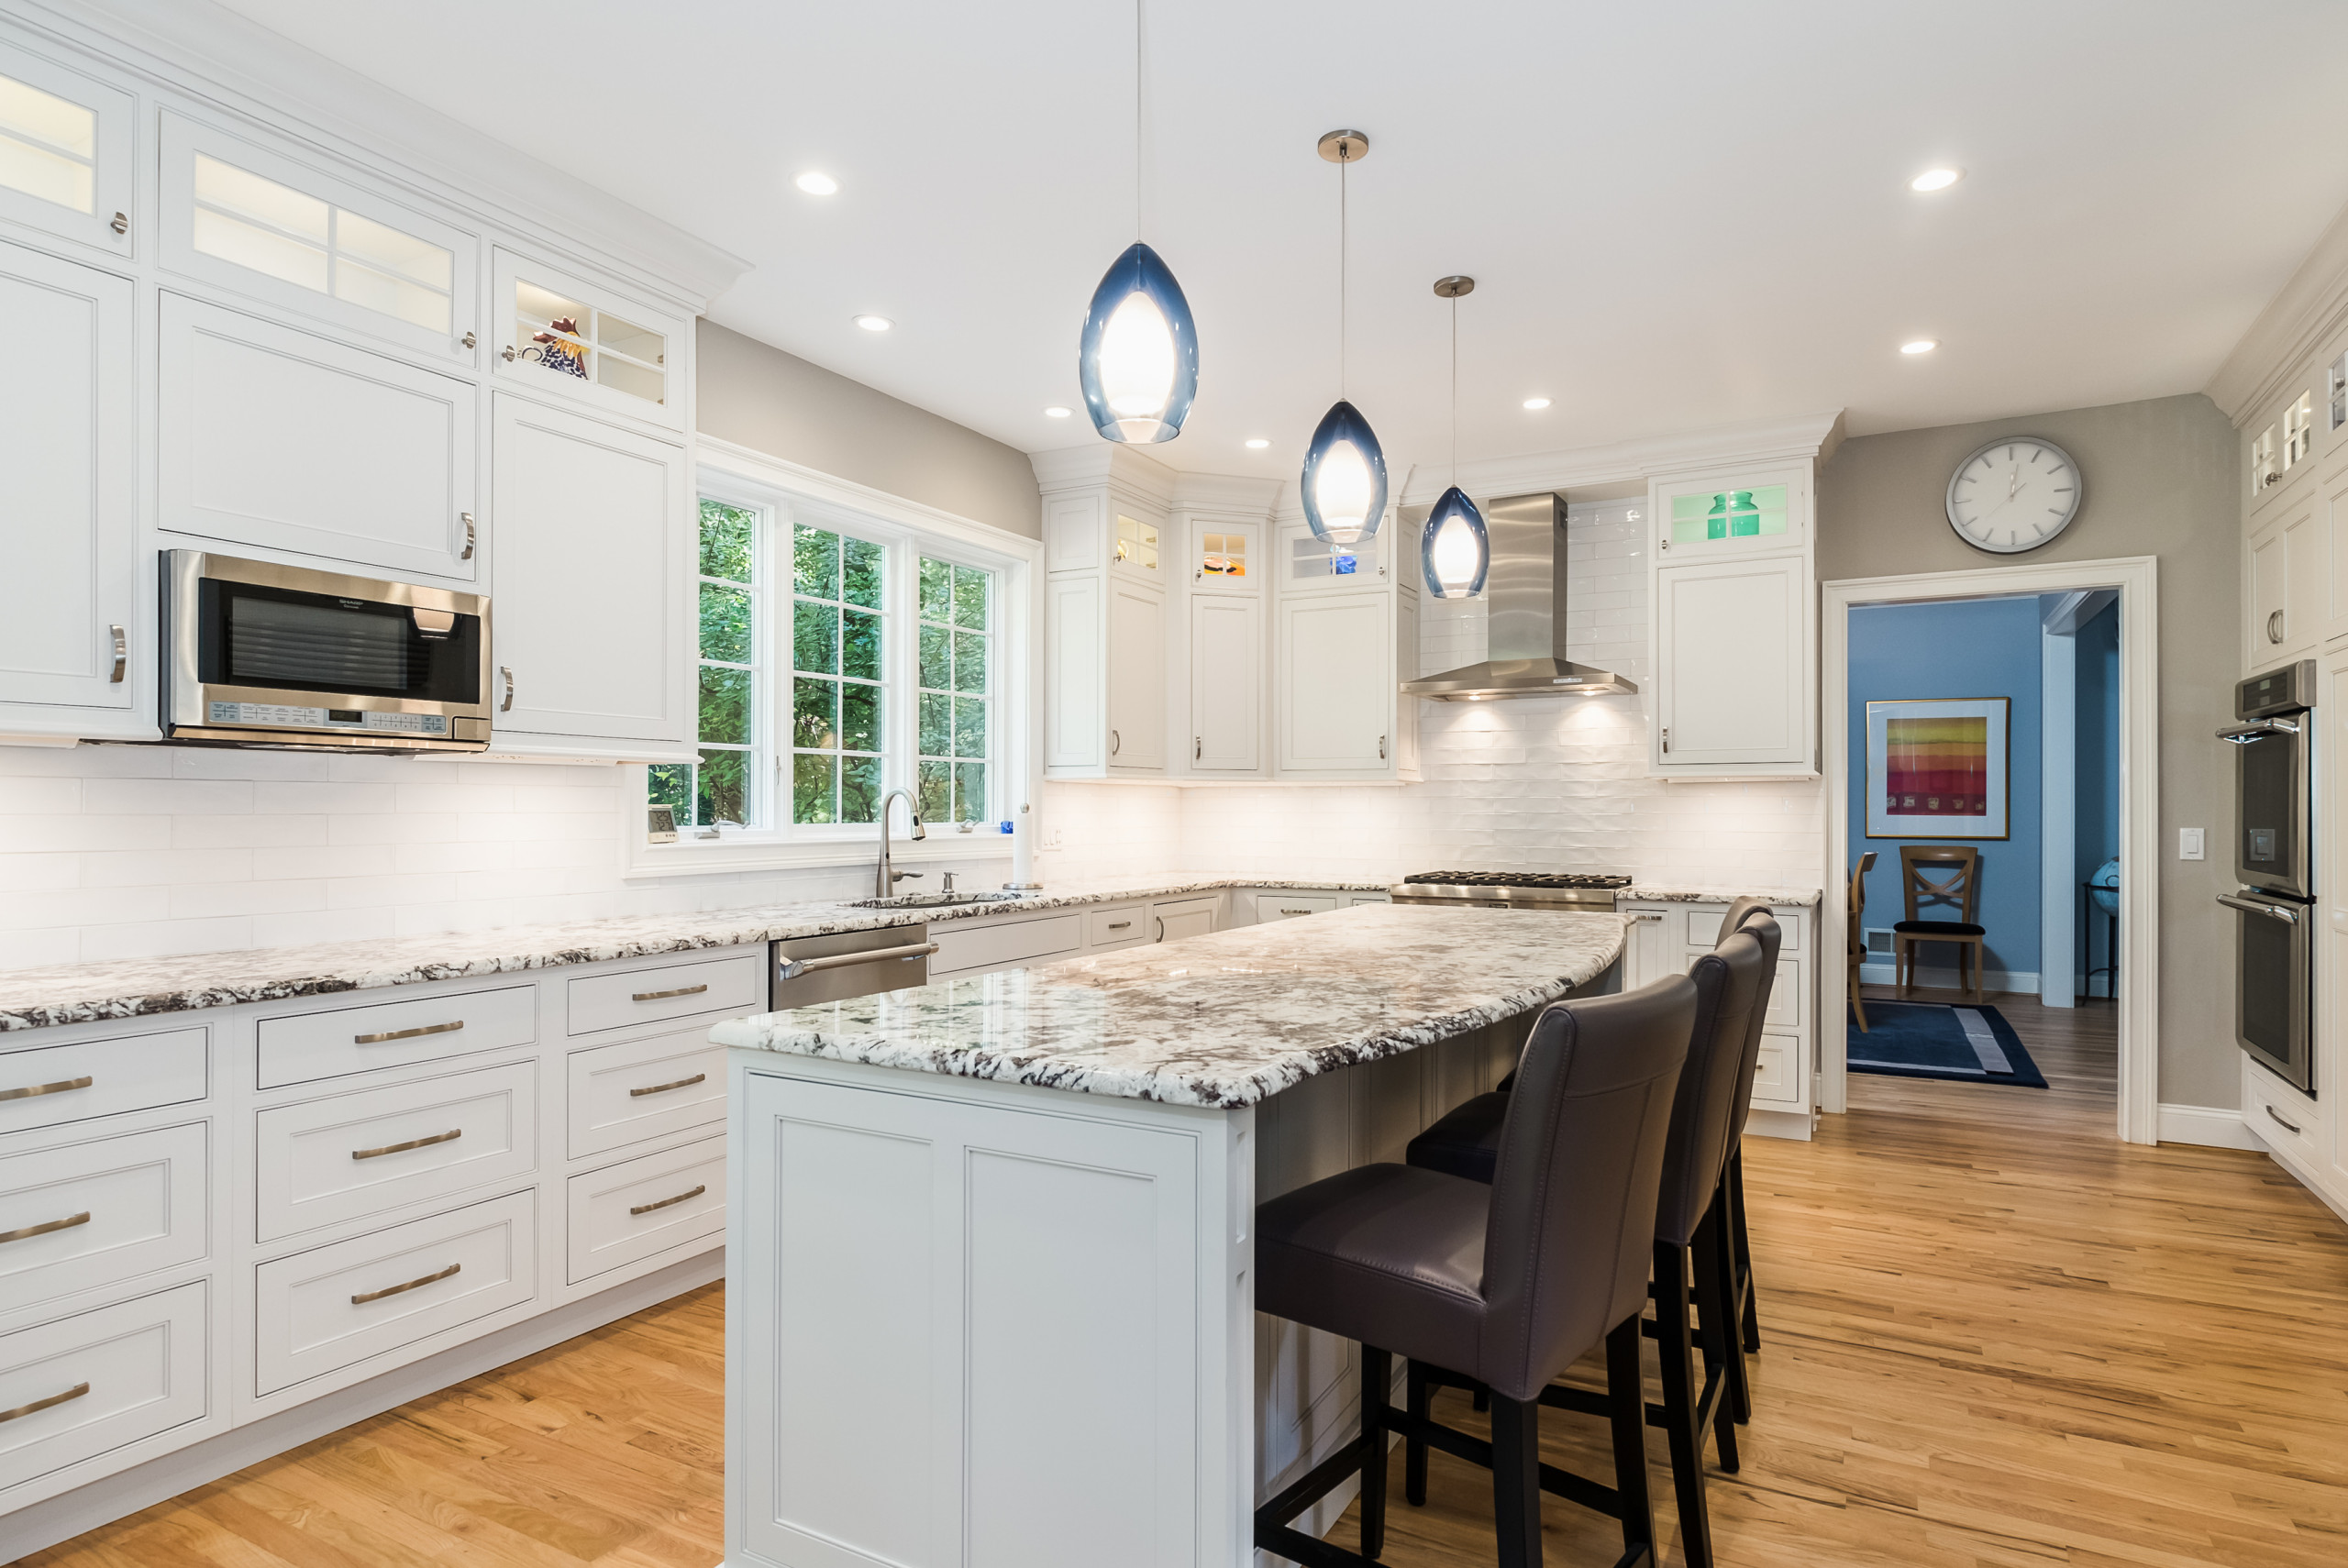 Simsbury Kitchen from 1996 gets a new lease